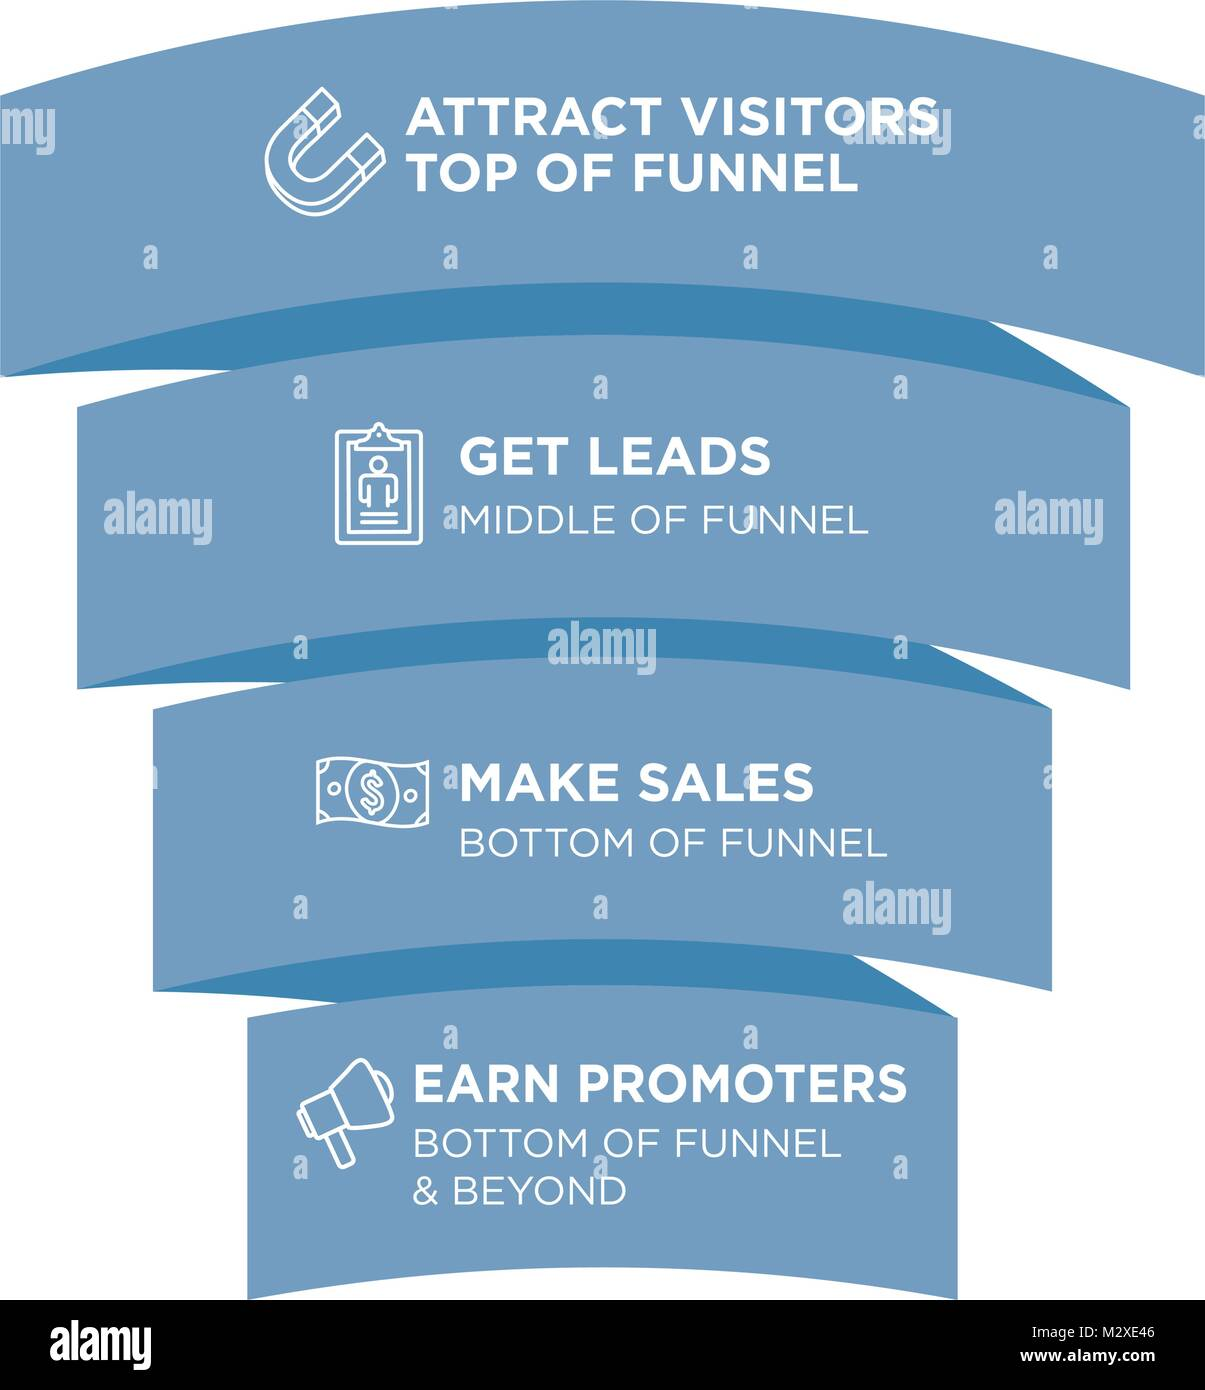 Inbound Funnel Marketing Image with Attract, Leads, Sales, & Promoters - Stock Image